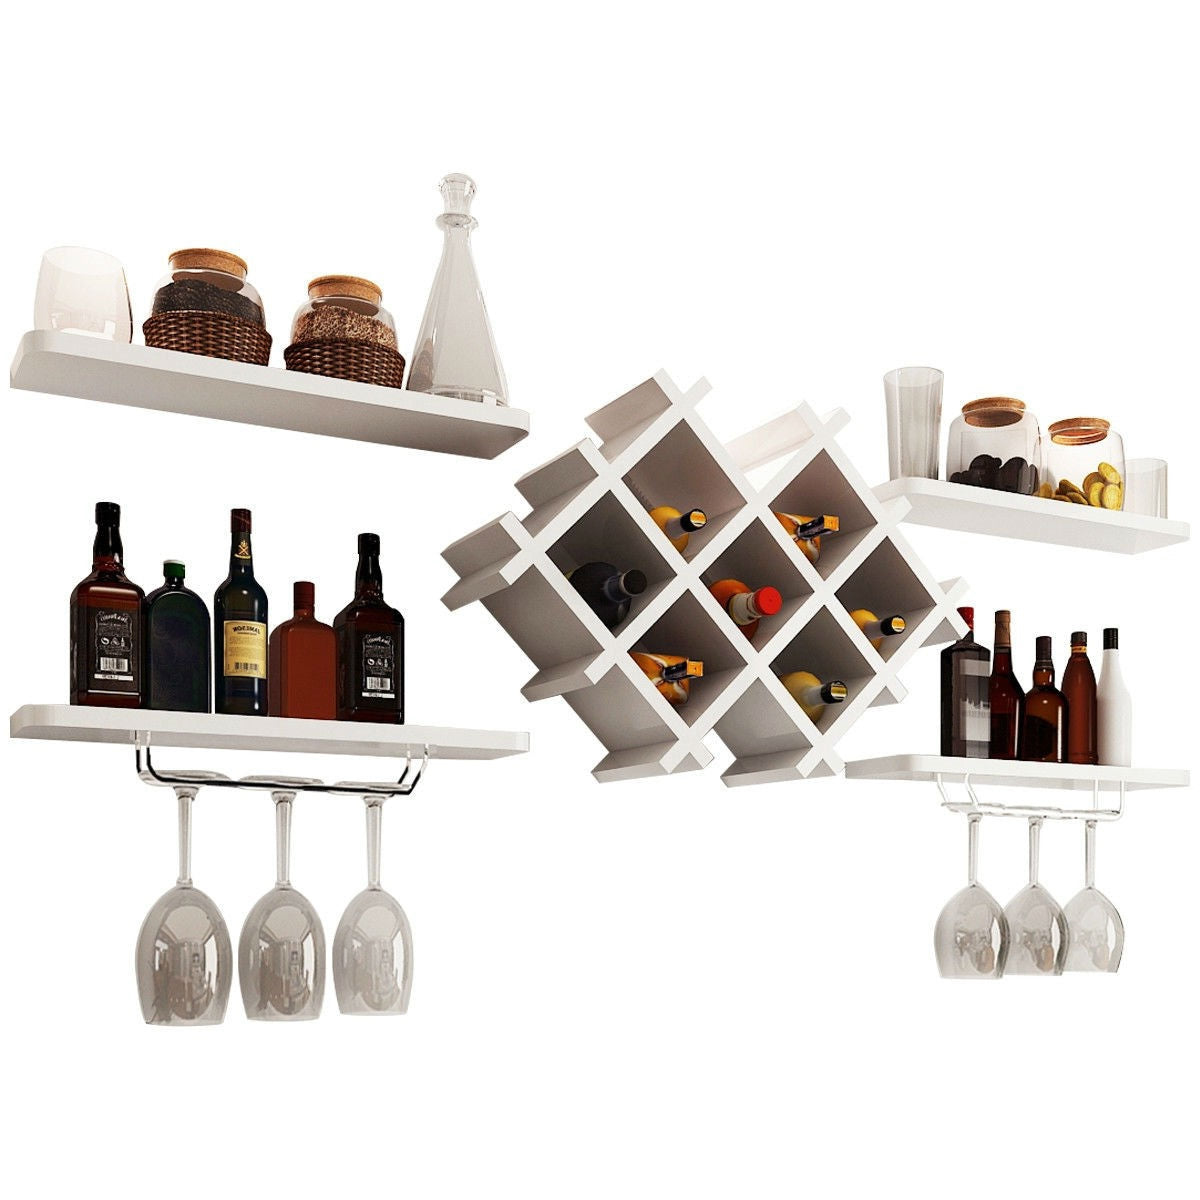 White 5 Piece Wall Mounted Wine Rack Set with Storage Shelves